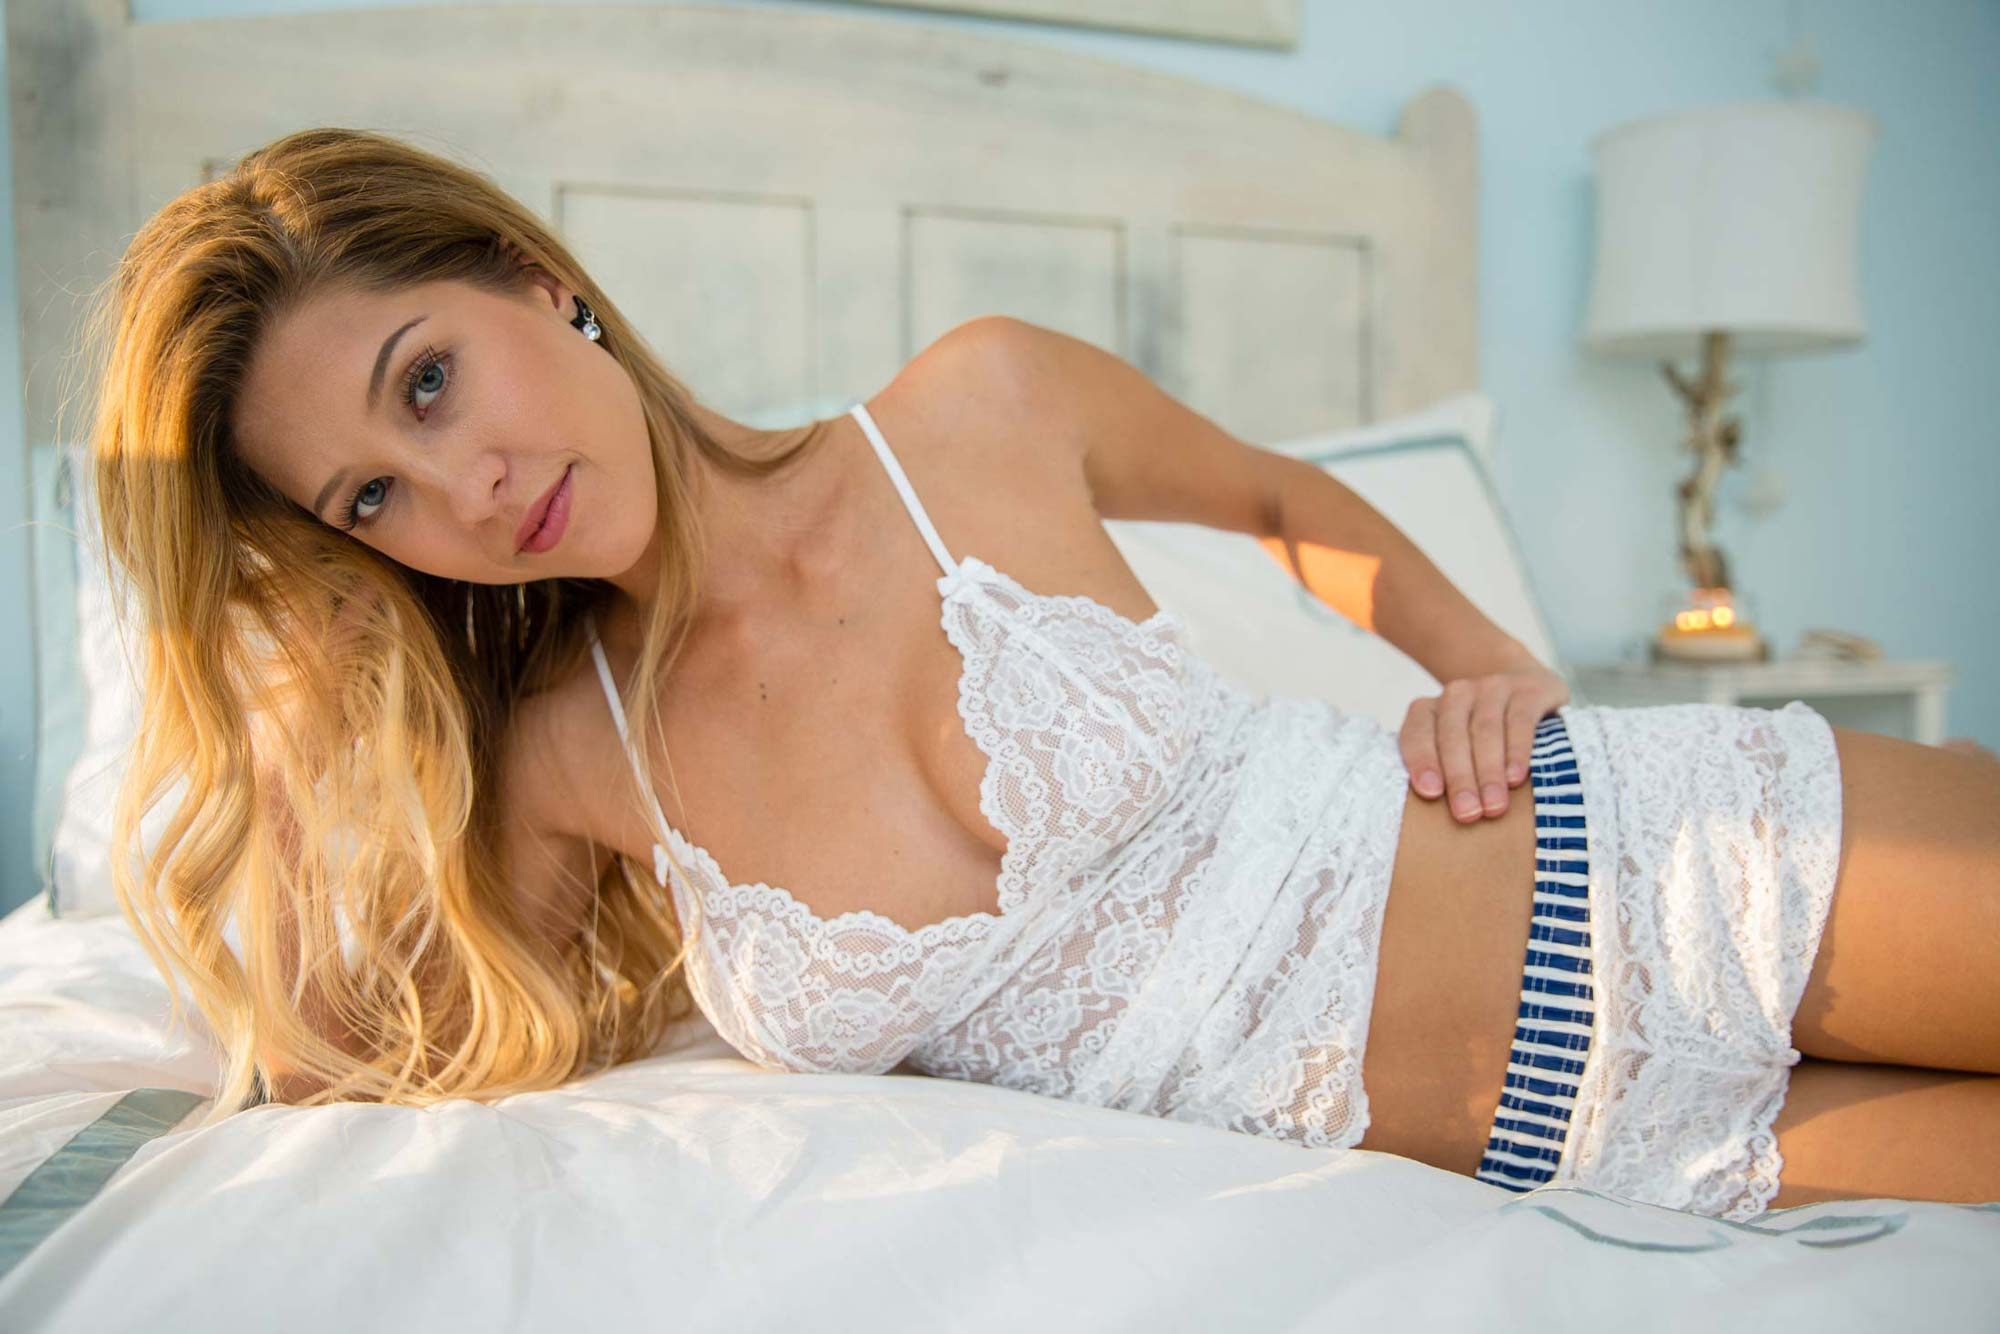 Amy Lou in Foxers Navy/White Striped Lace boxers and all white lace camisole.